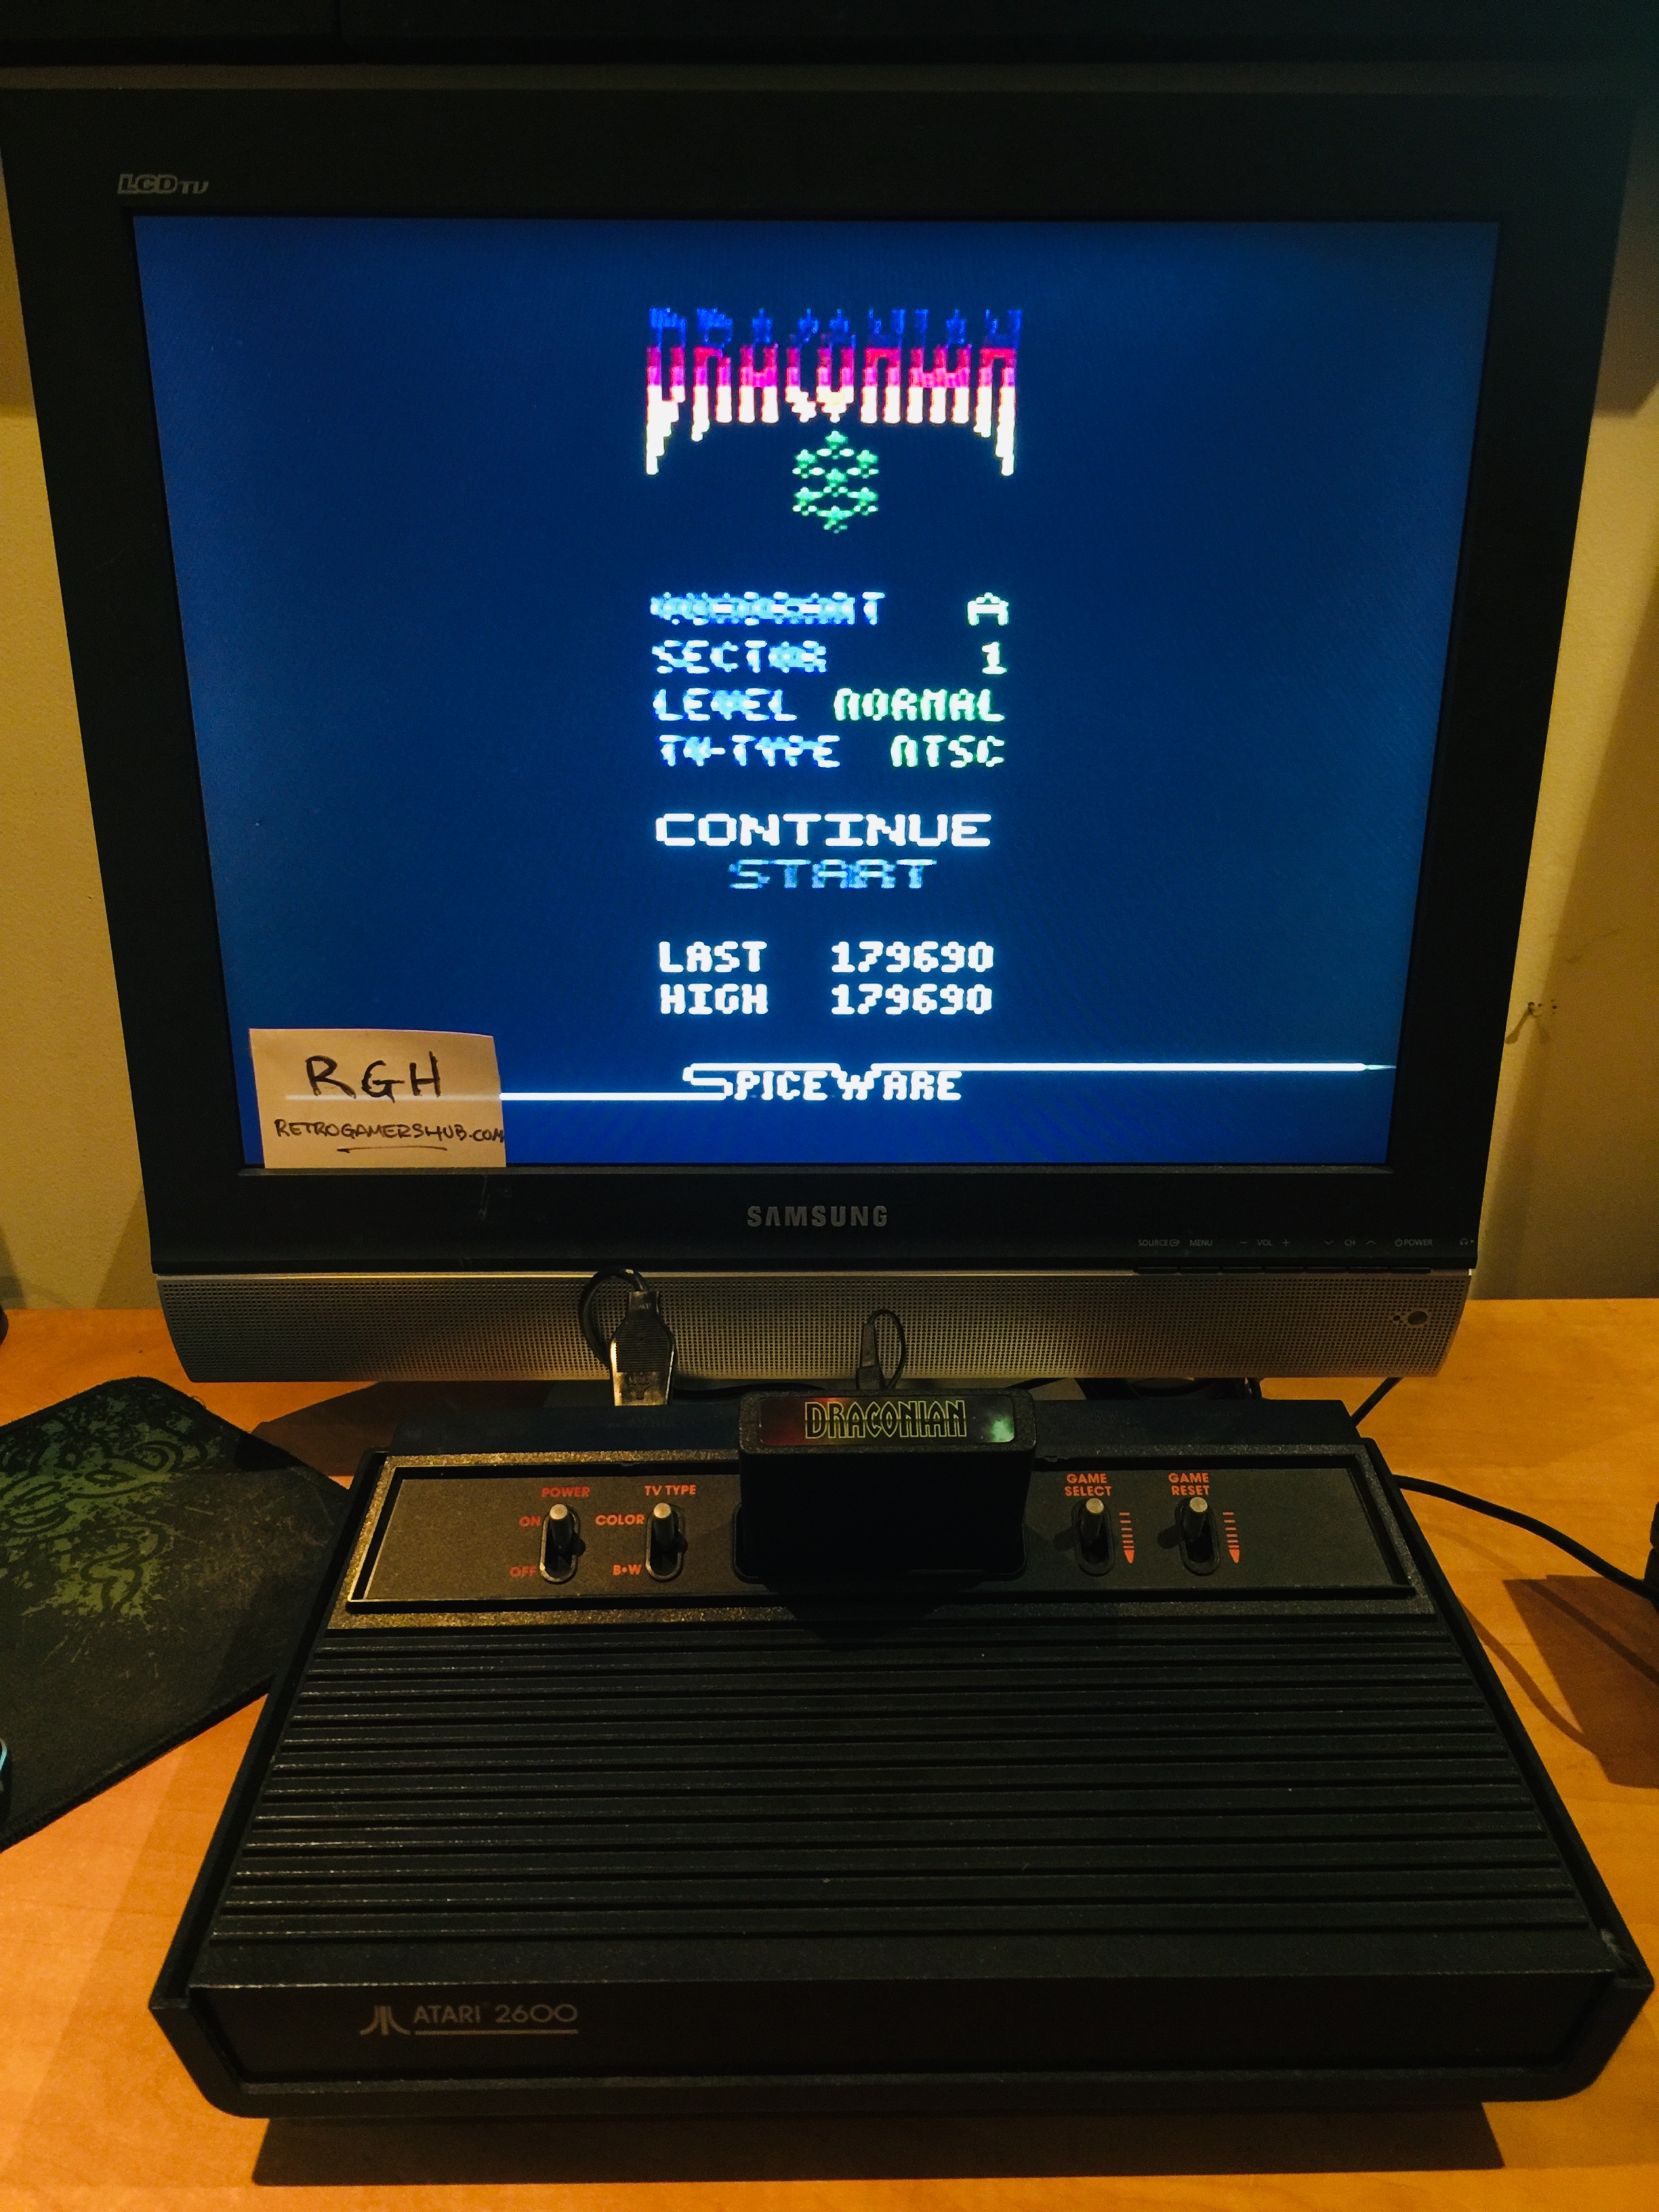 RetroGamersHub: Draconian: Quadrant Alpha / Sector 1 [Normal] (Atari 2600) 179,690 points on 2019-05-14 22:39:58